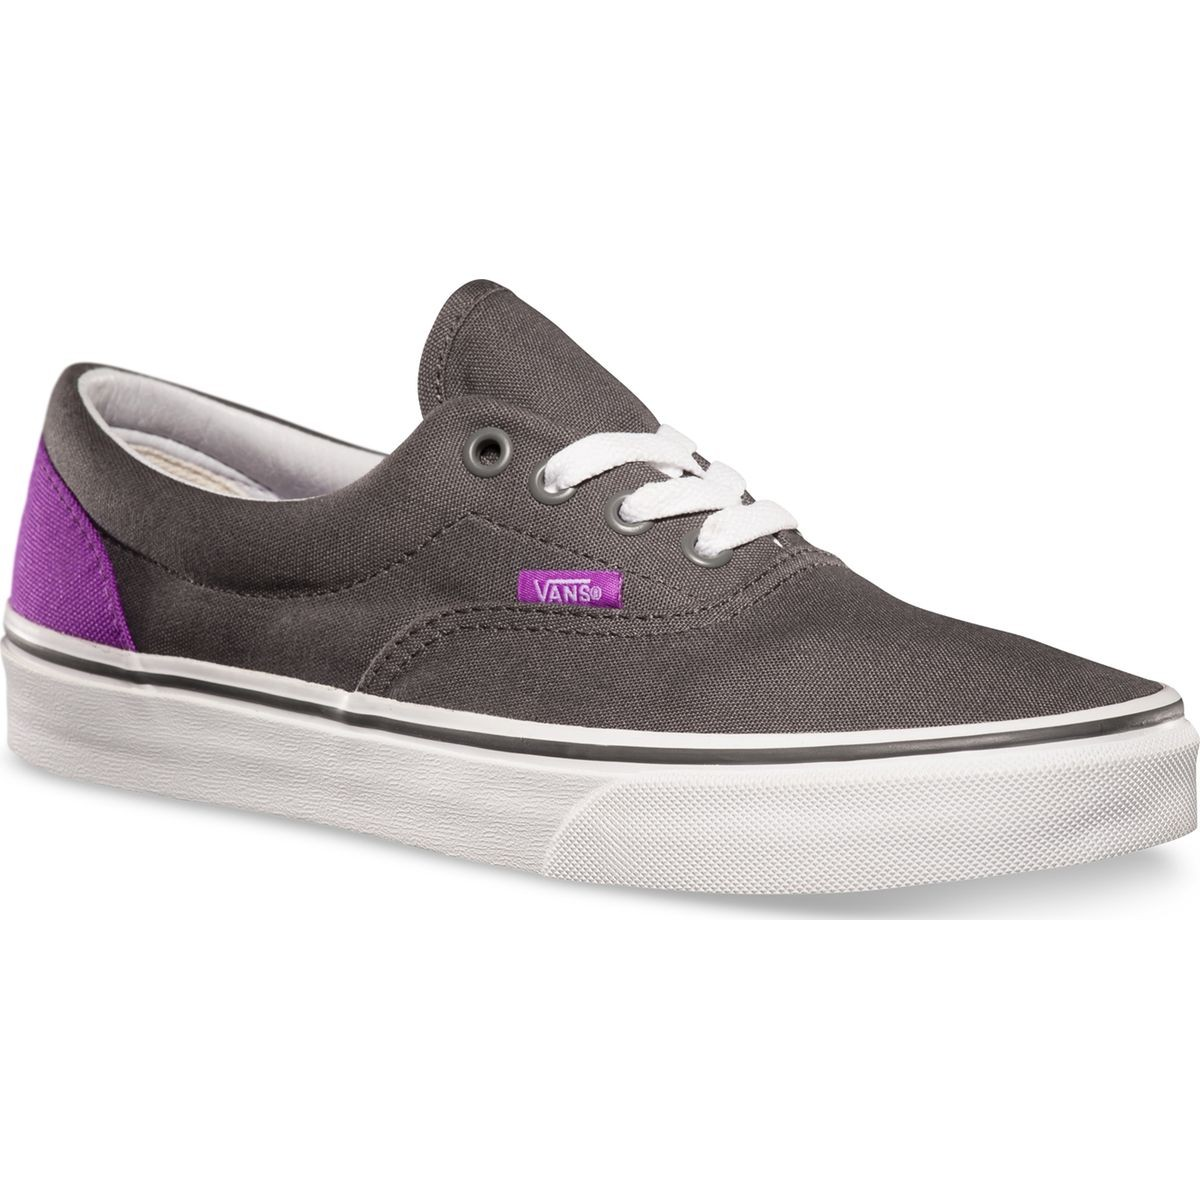 Buy vans shoes purple   OFF52% Discounts 878d60a96